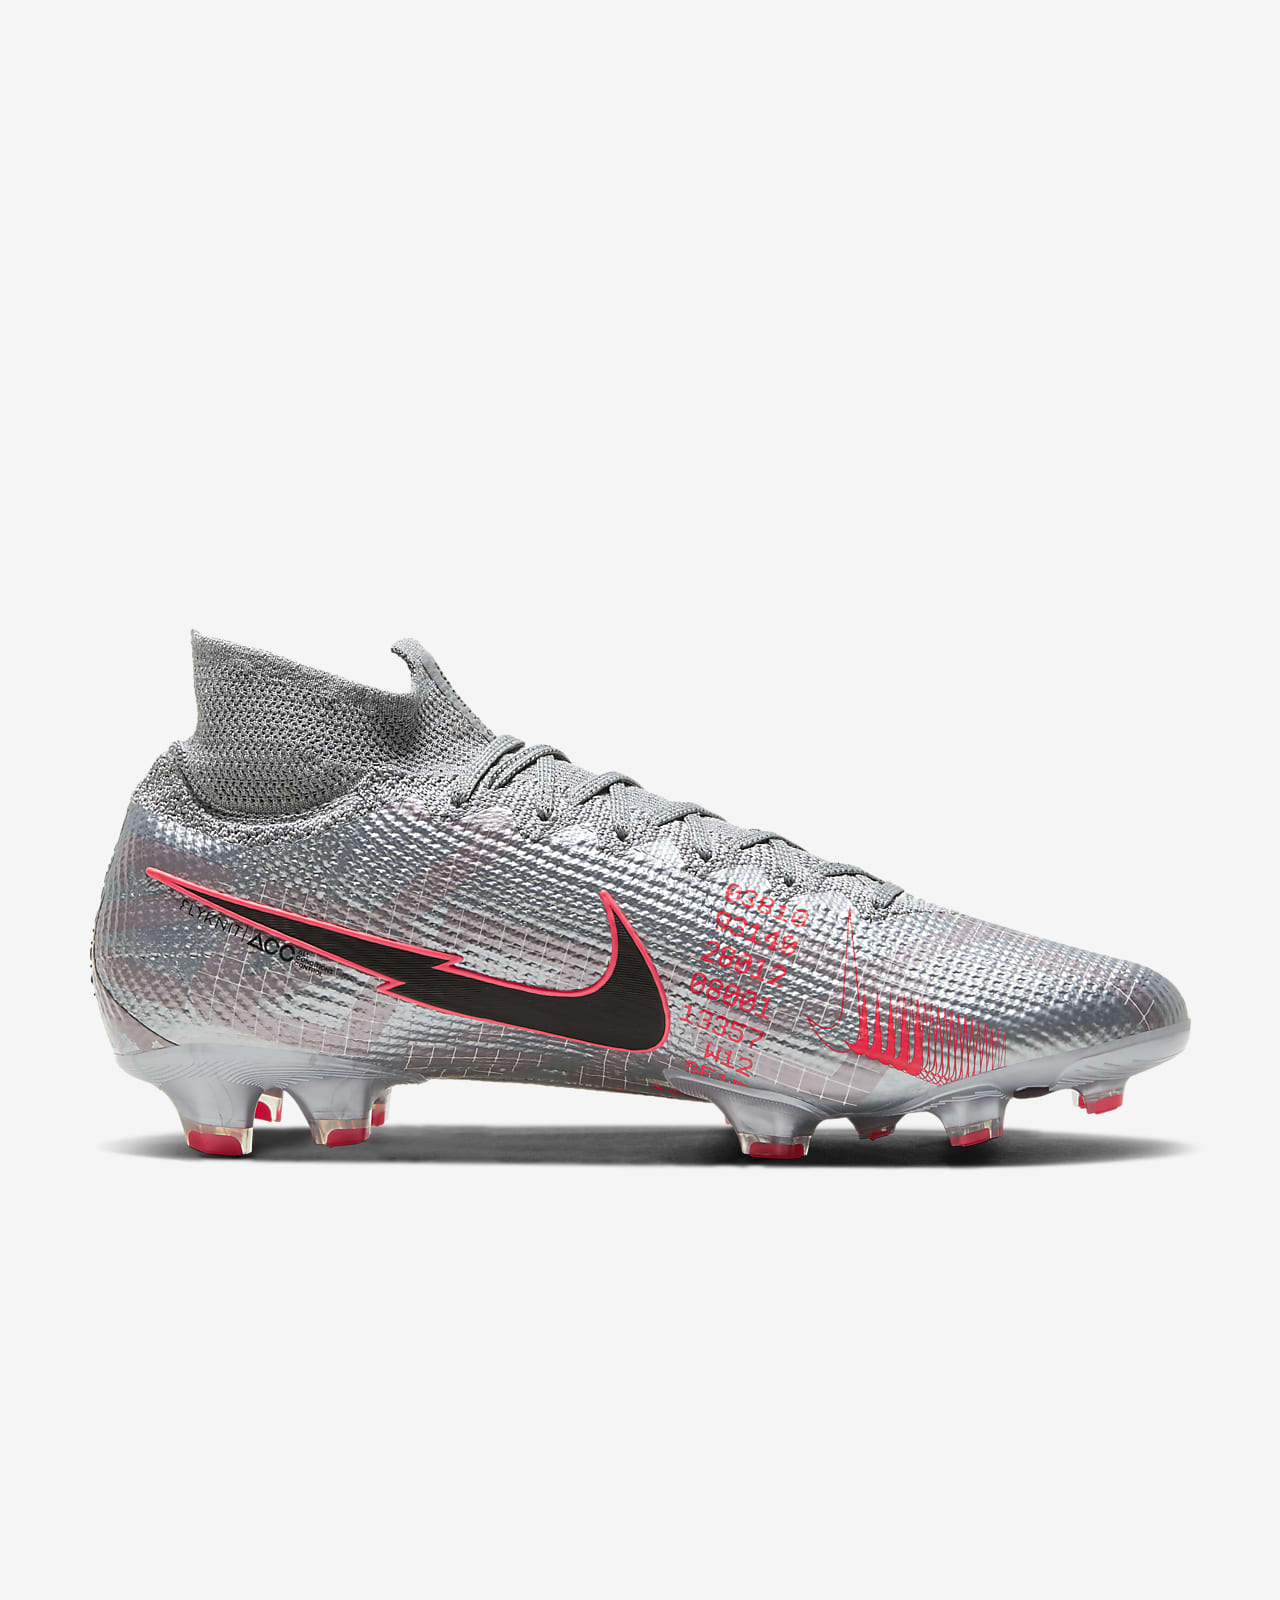 Nike Mercurial Superfly 7 Elite FG fotballsko til gress